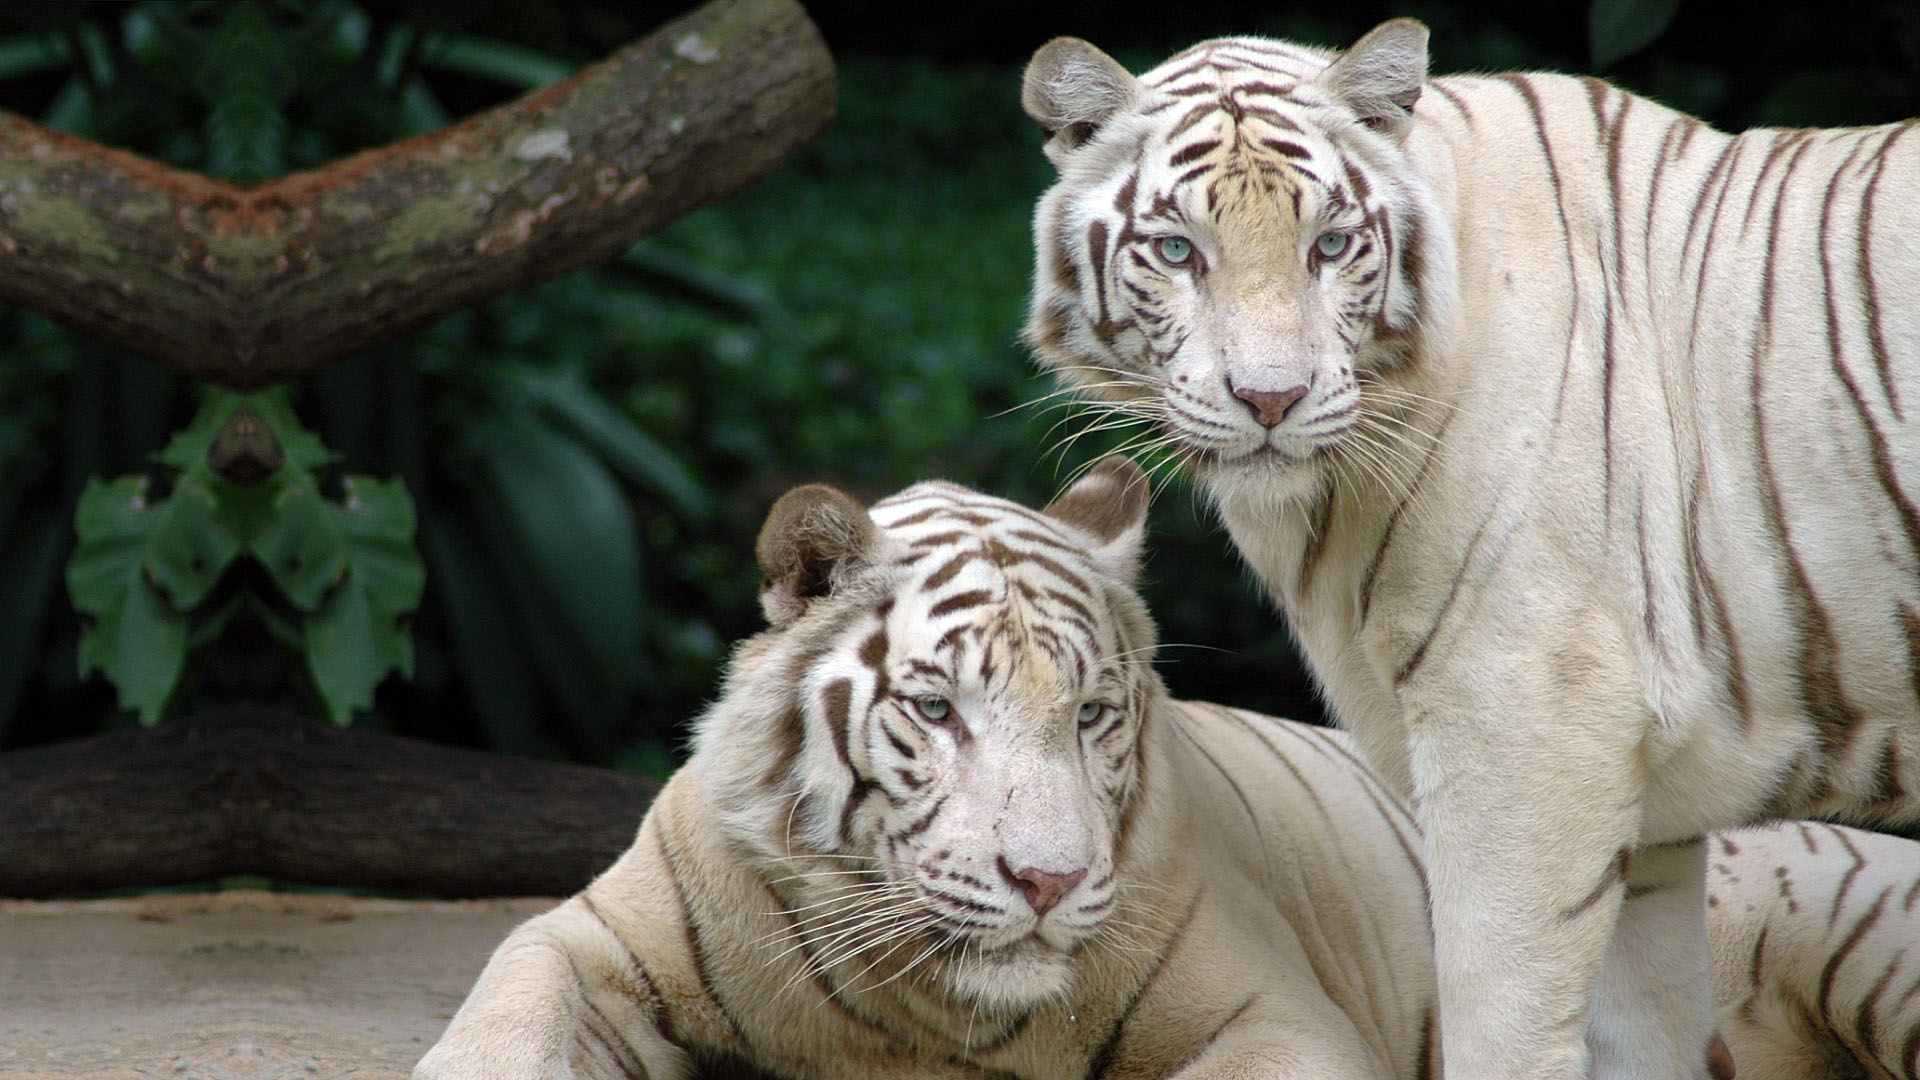 White Tigers high quality wallpaper